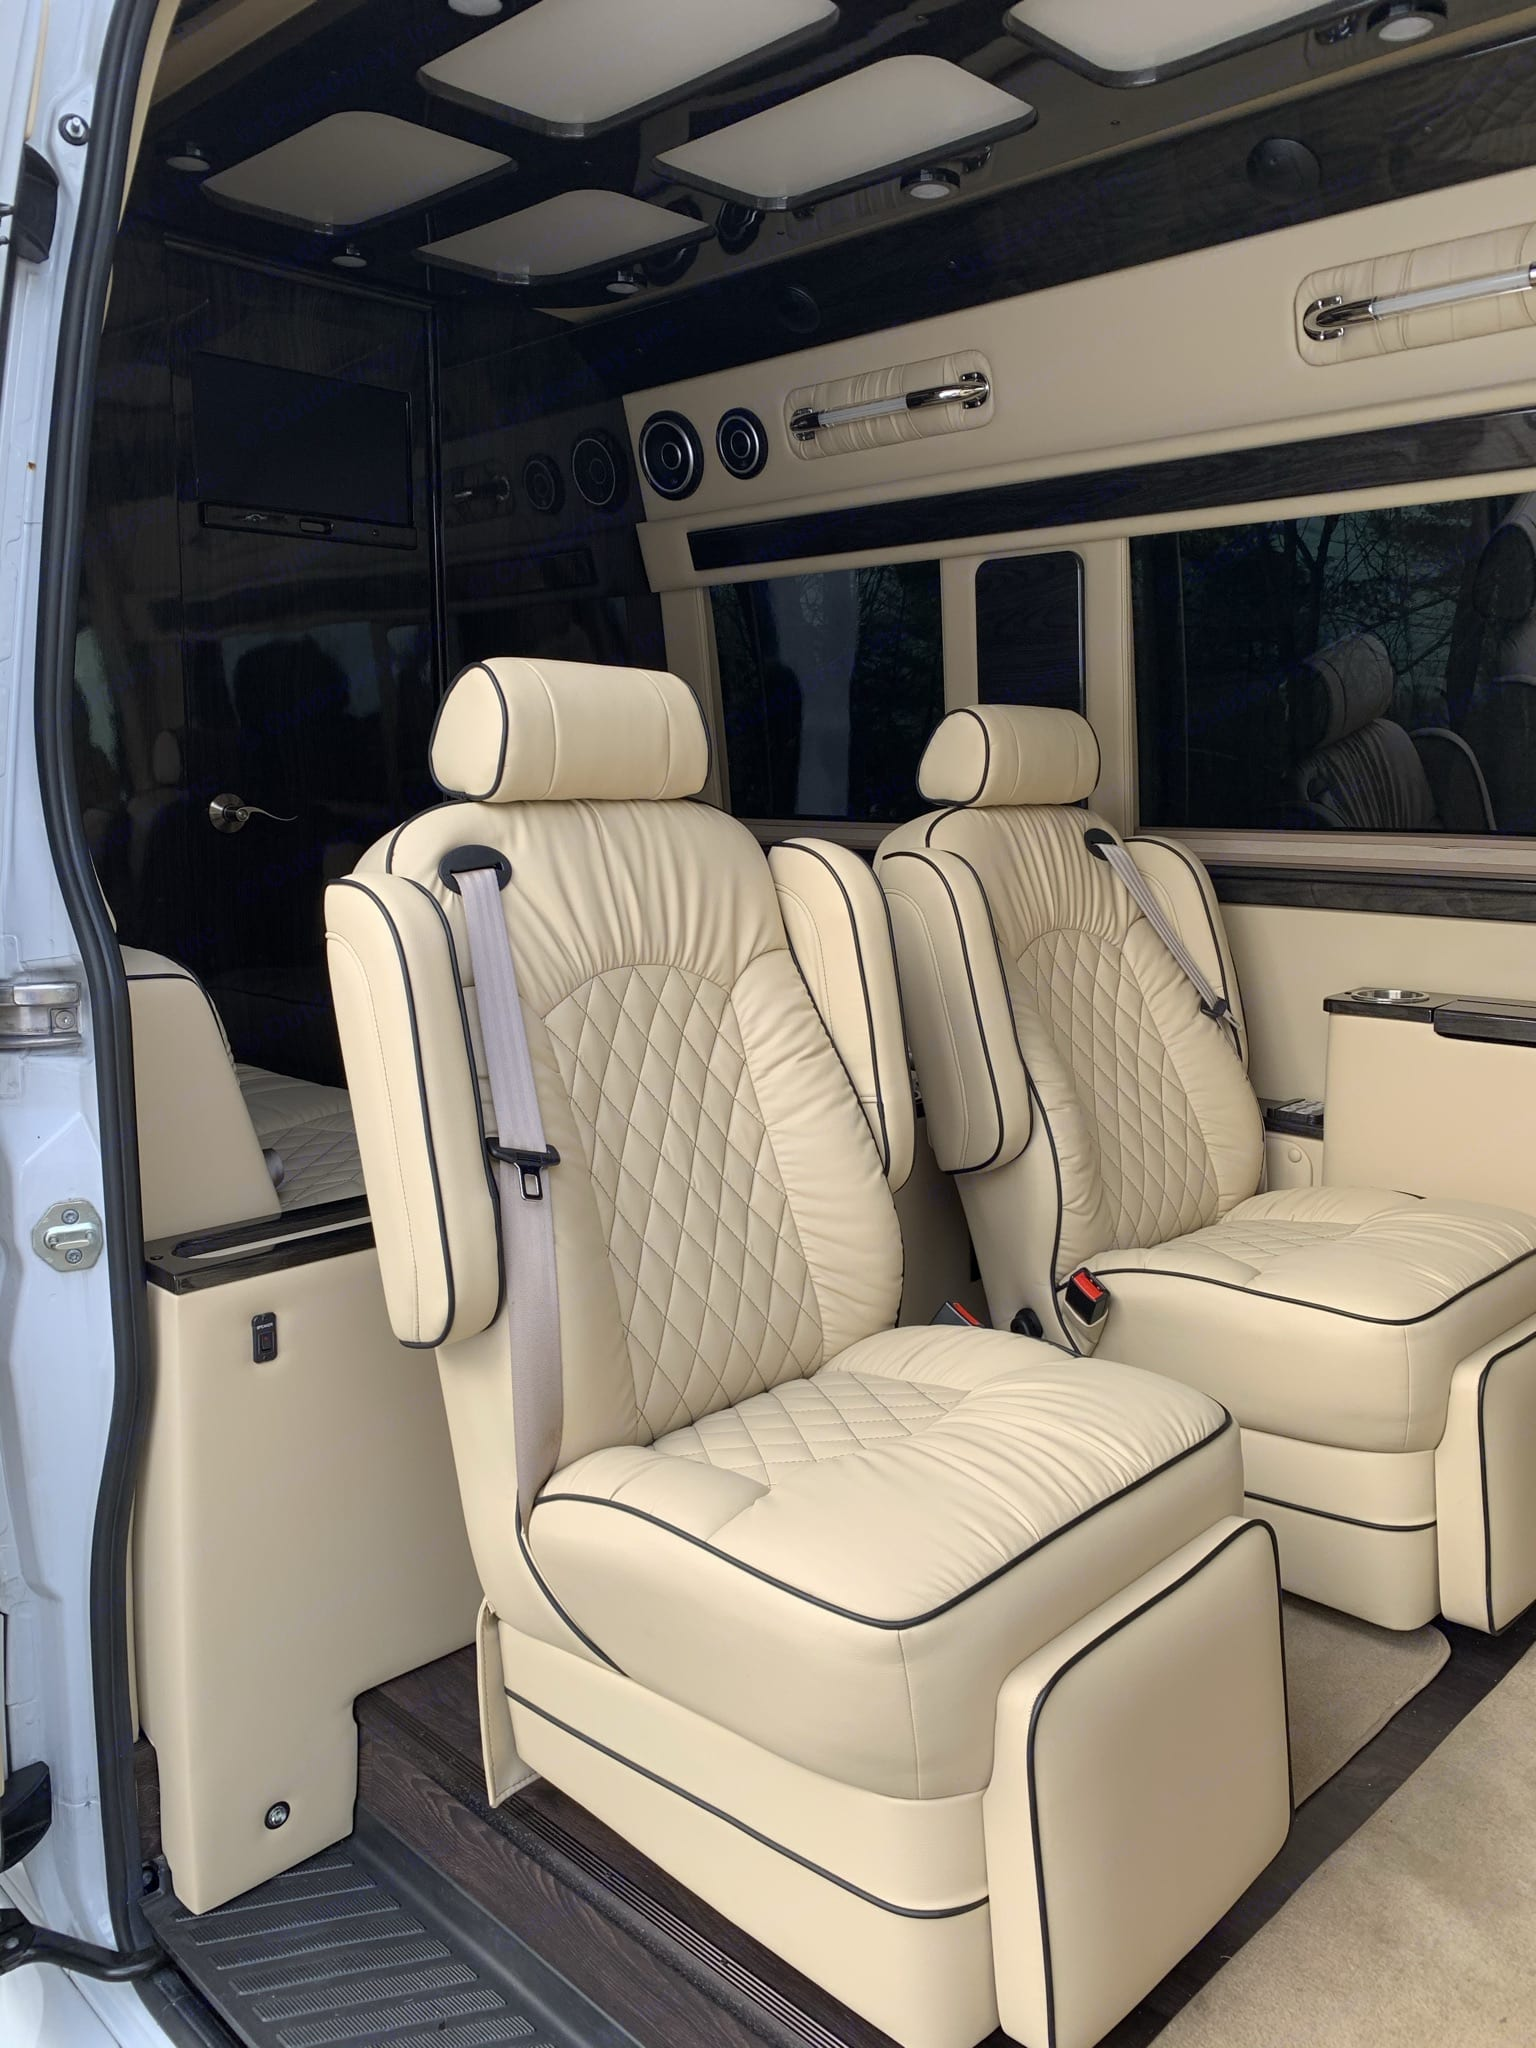 The wide sliding door on the side of the vehicle and the lay-flat swinging doors at the rear make it easy to pack and embark on your next adventure.. Mercedes-Benz Sprinter 2018